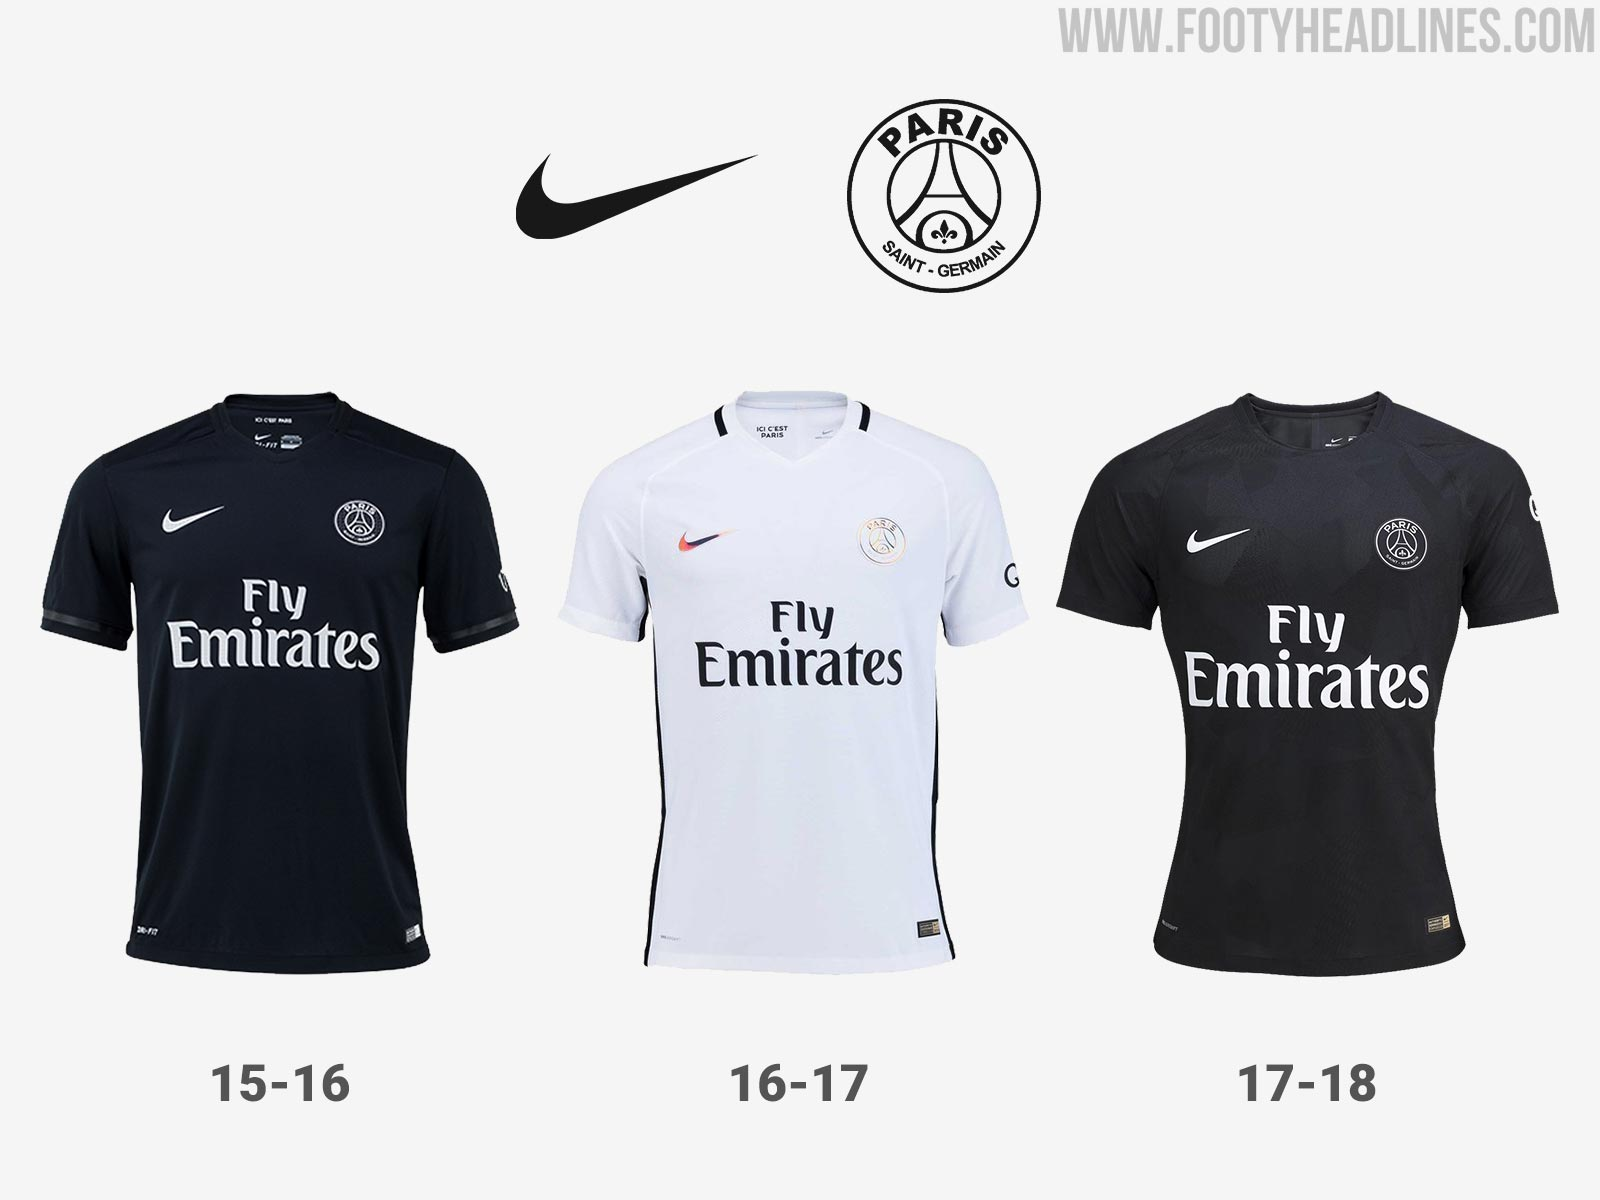 No design specifics of the Paris Saint-Germain 18-19 third kit are known at  the moment eb1134787